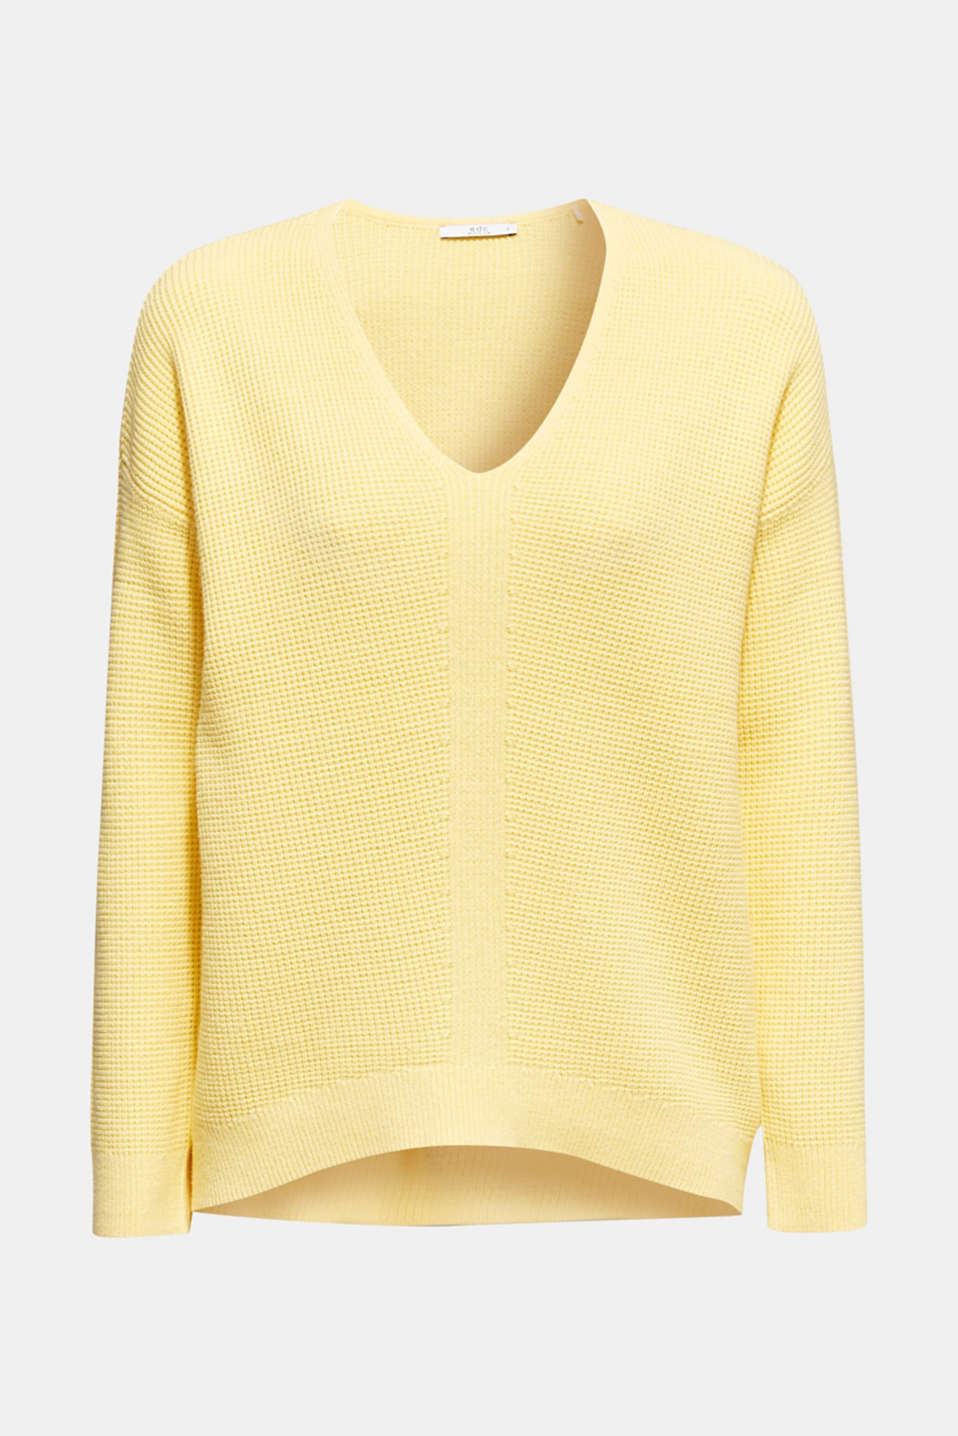 Jumper with a rice grain texture, YELLOW, detail image number 5